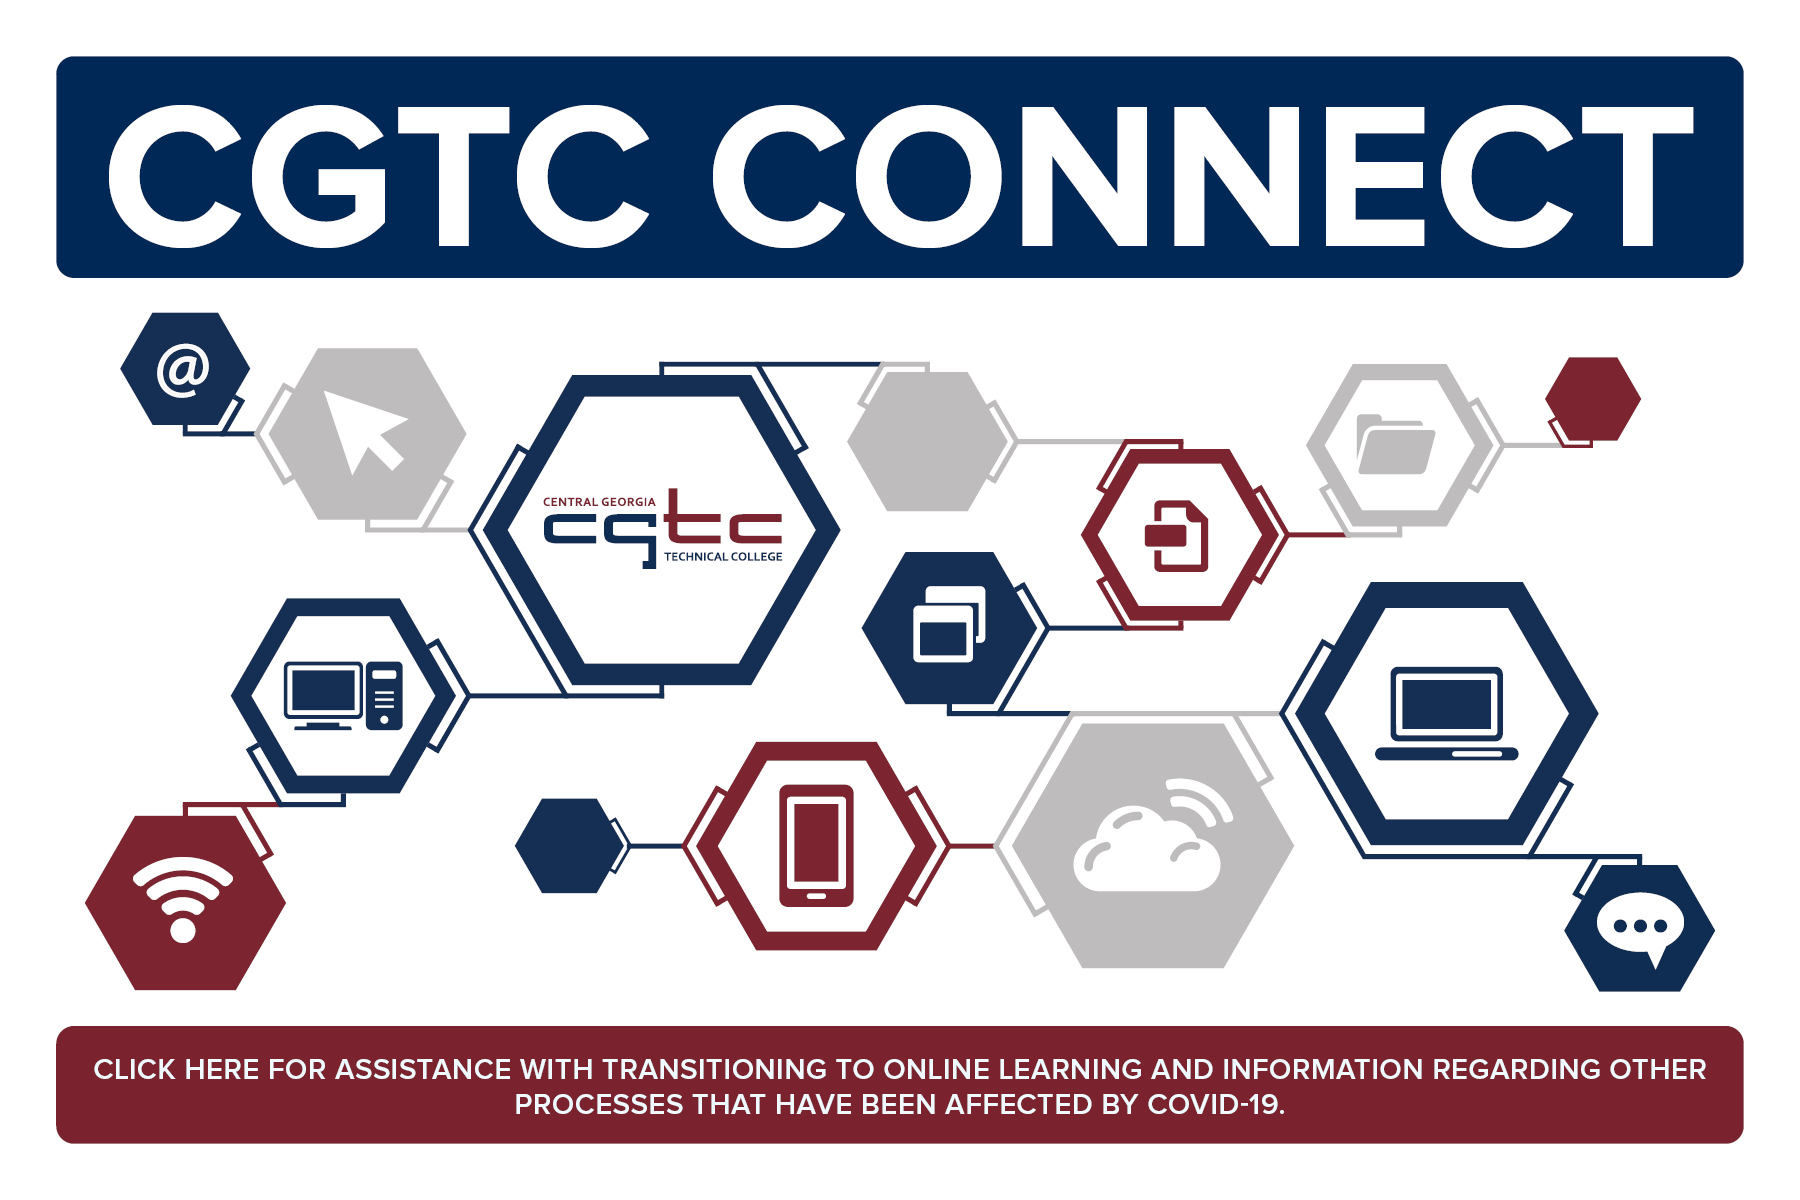 CGTC Connect Page